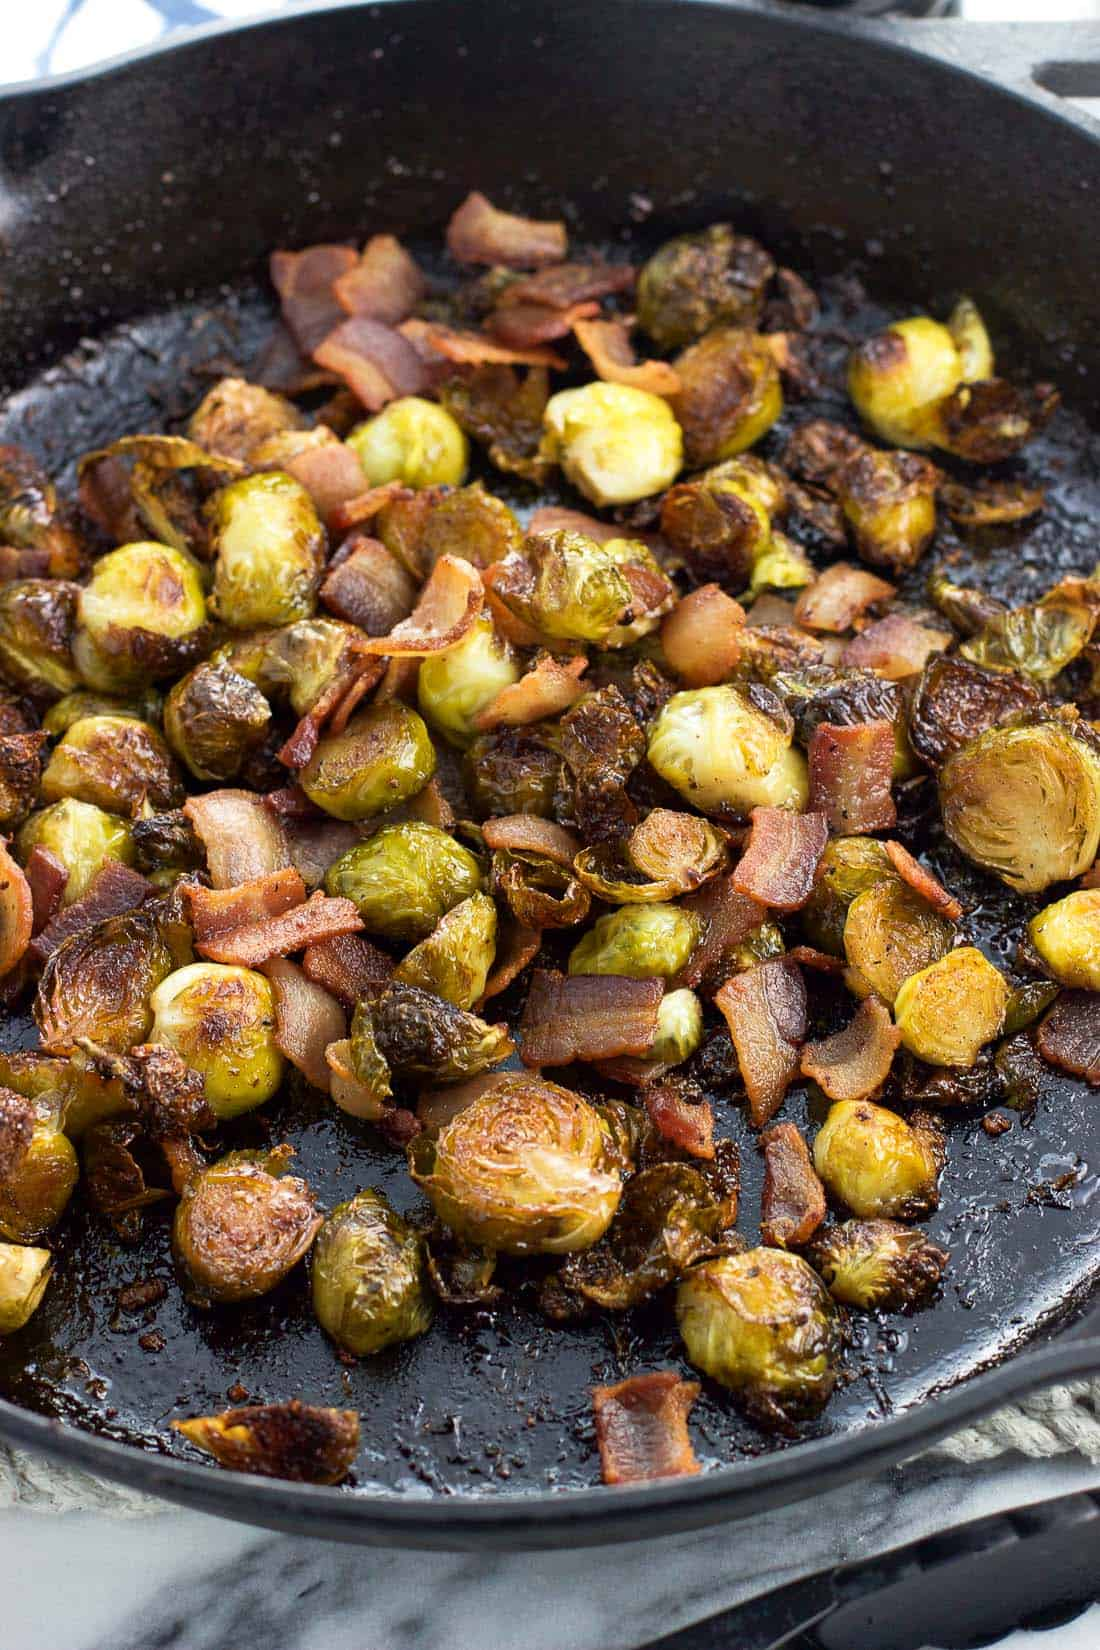 Maple bacon brussels sprouts in a cast iron skillet after roasting